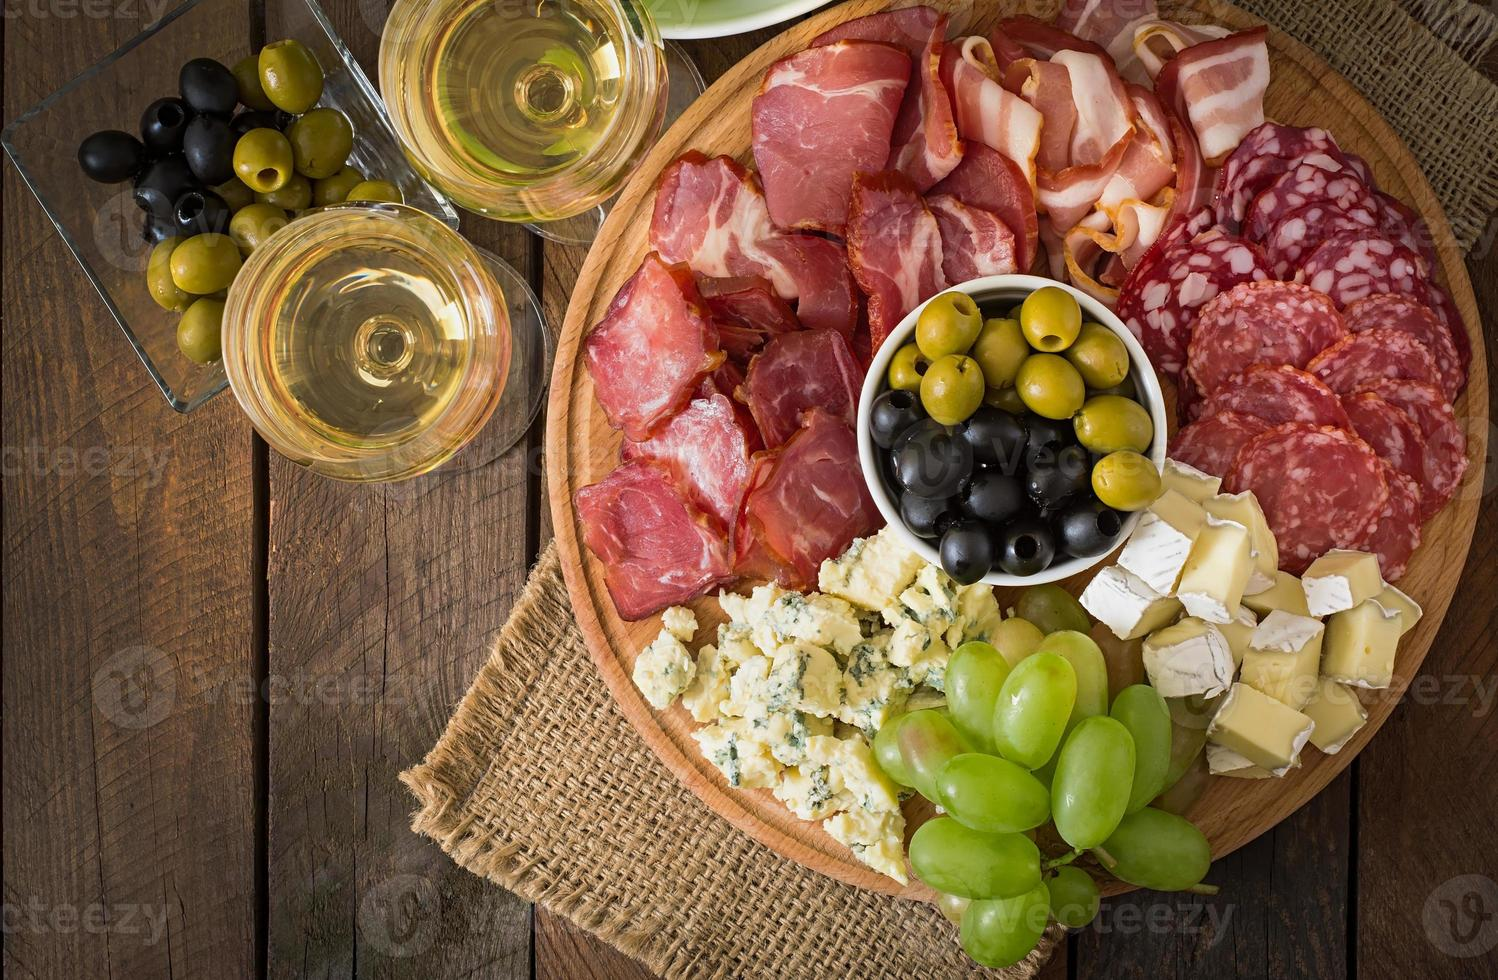 Antipasto catering platter with bacon, jerky, salami, cheese and grapes photo